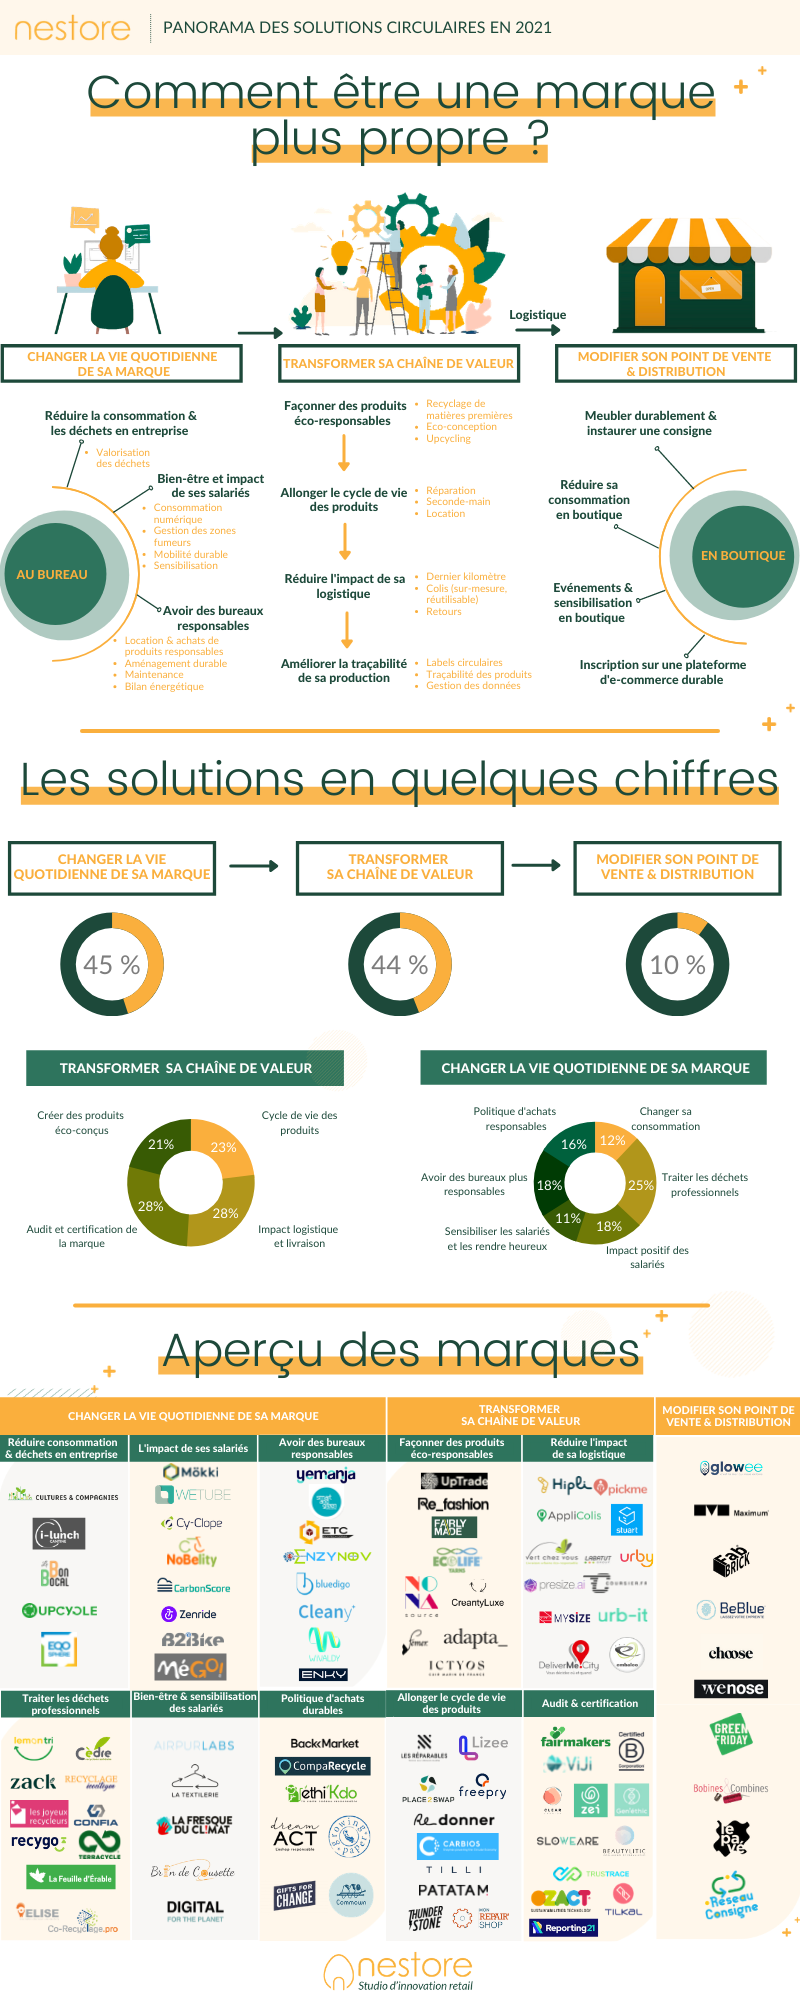 Infographie panorama des solutions circulaires en 2021